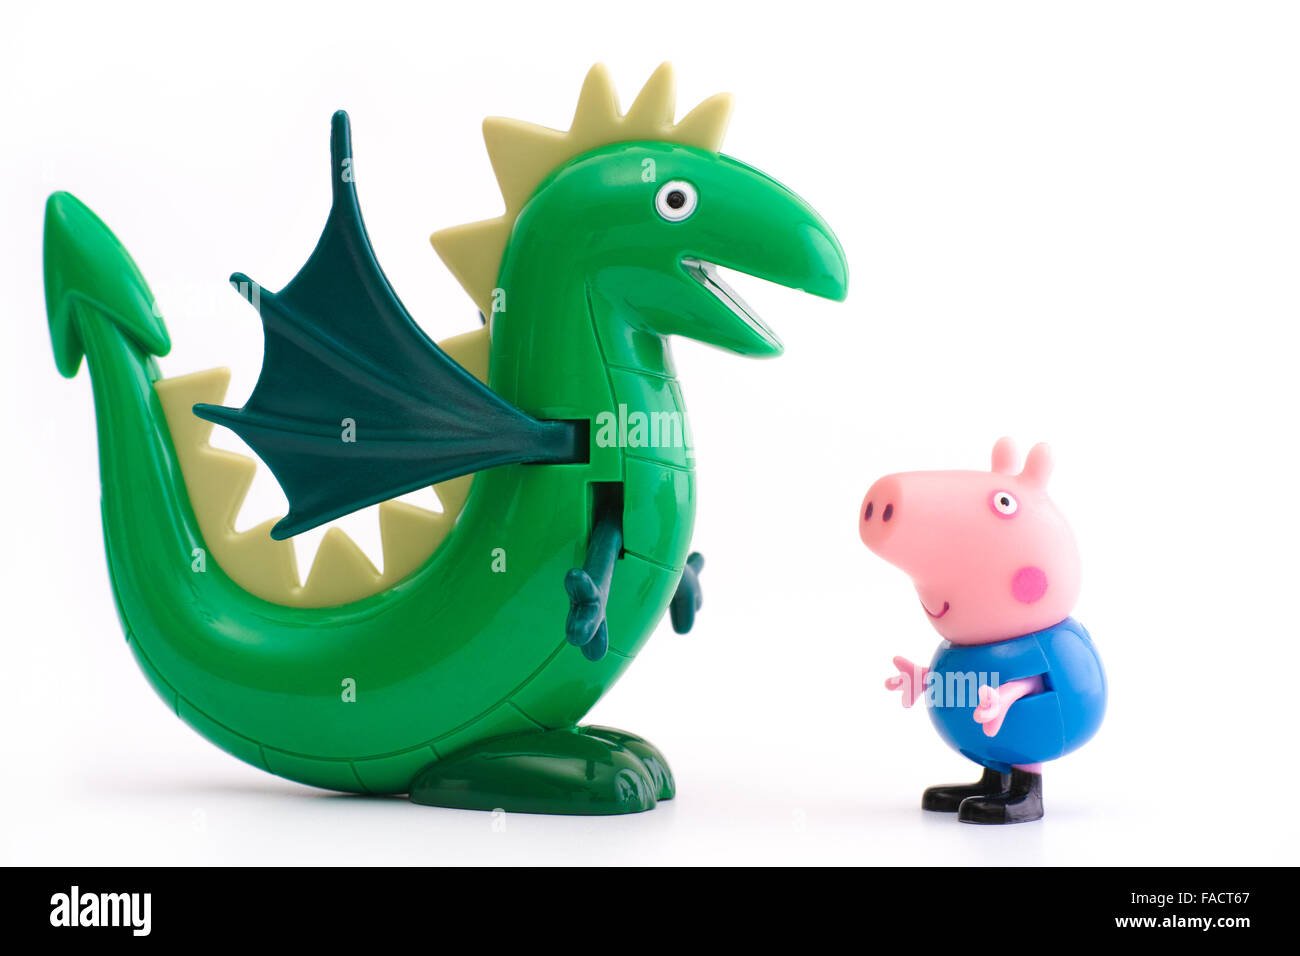 Tambov, Russian Federation - December 16, 2015 George Pig  toy character with green dinosaur on white background. - Stock Image